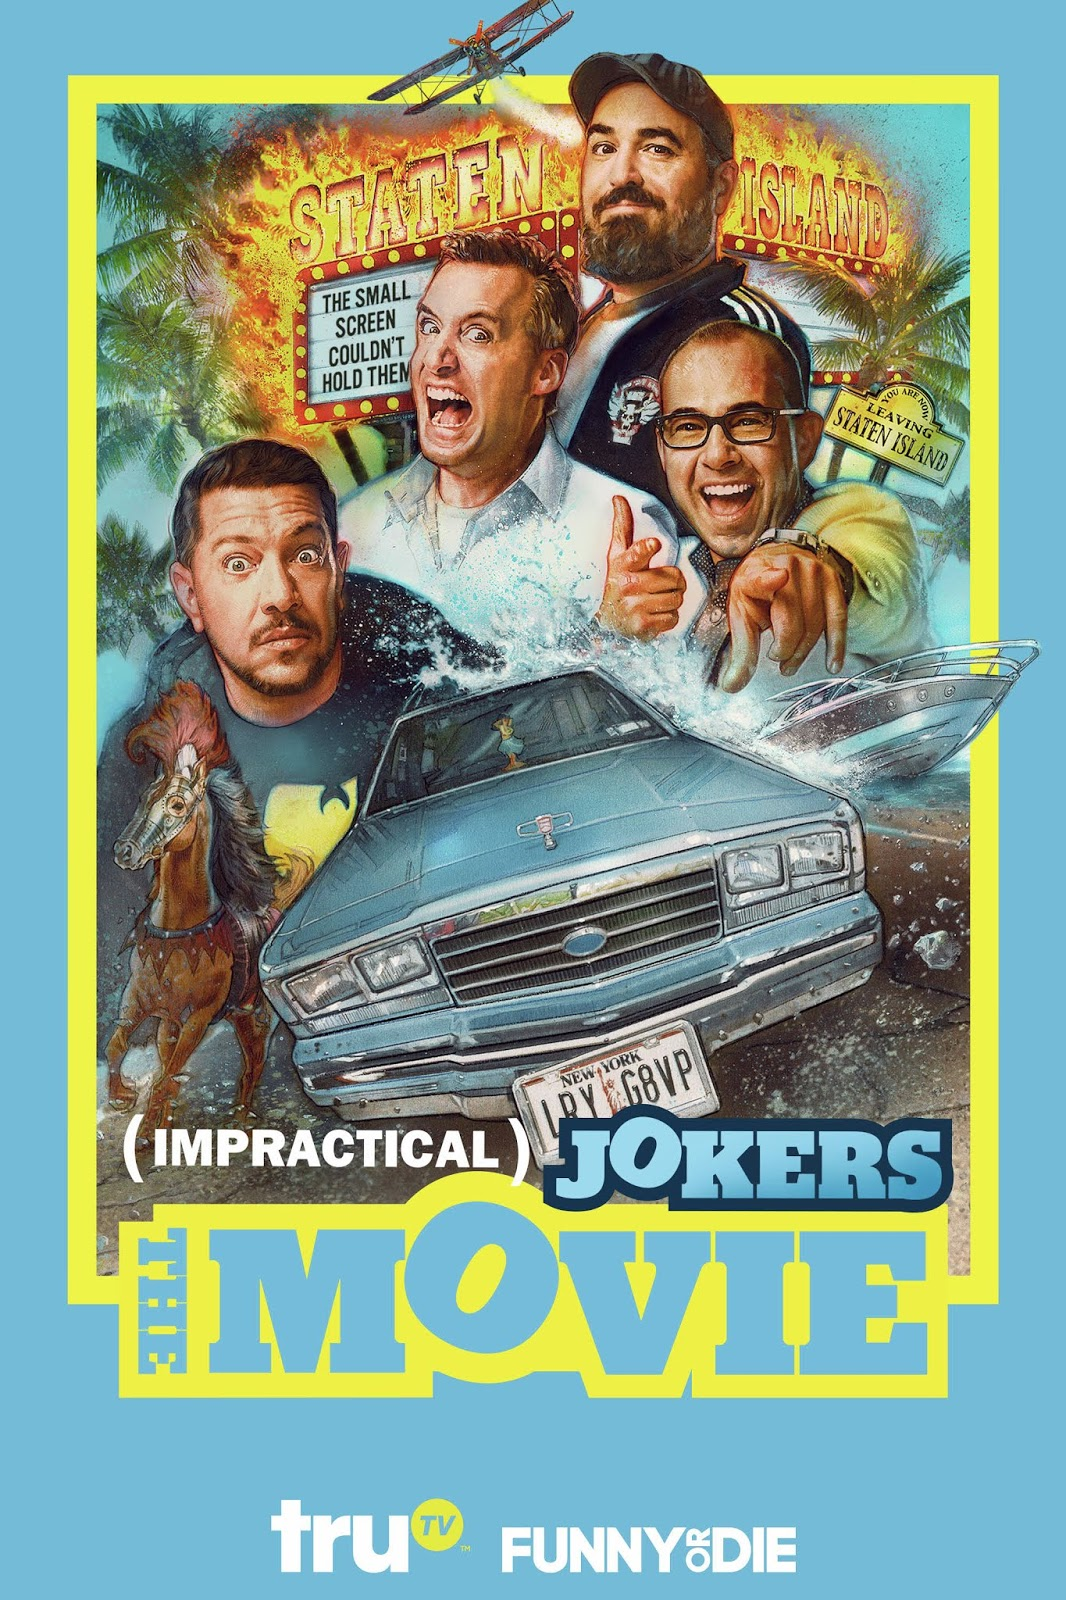 IMPRACTICAL JOKERS: THE MOVIE AVAILABLE TO OWN ON DIGITAL NOW + Digital Code #Giveaway